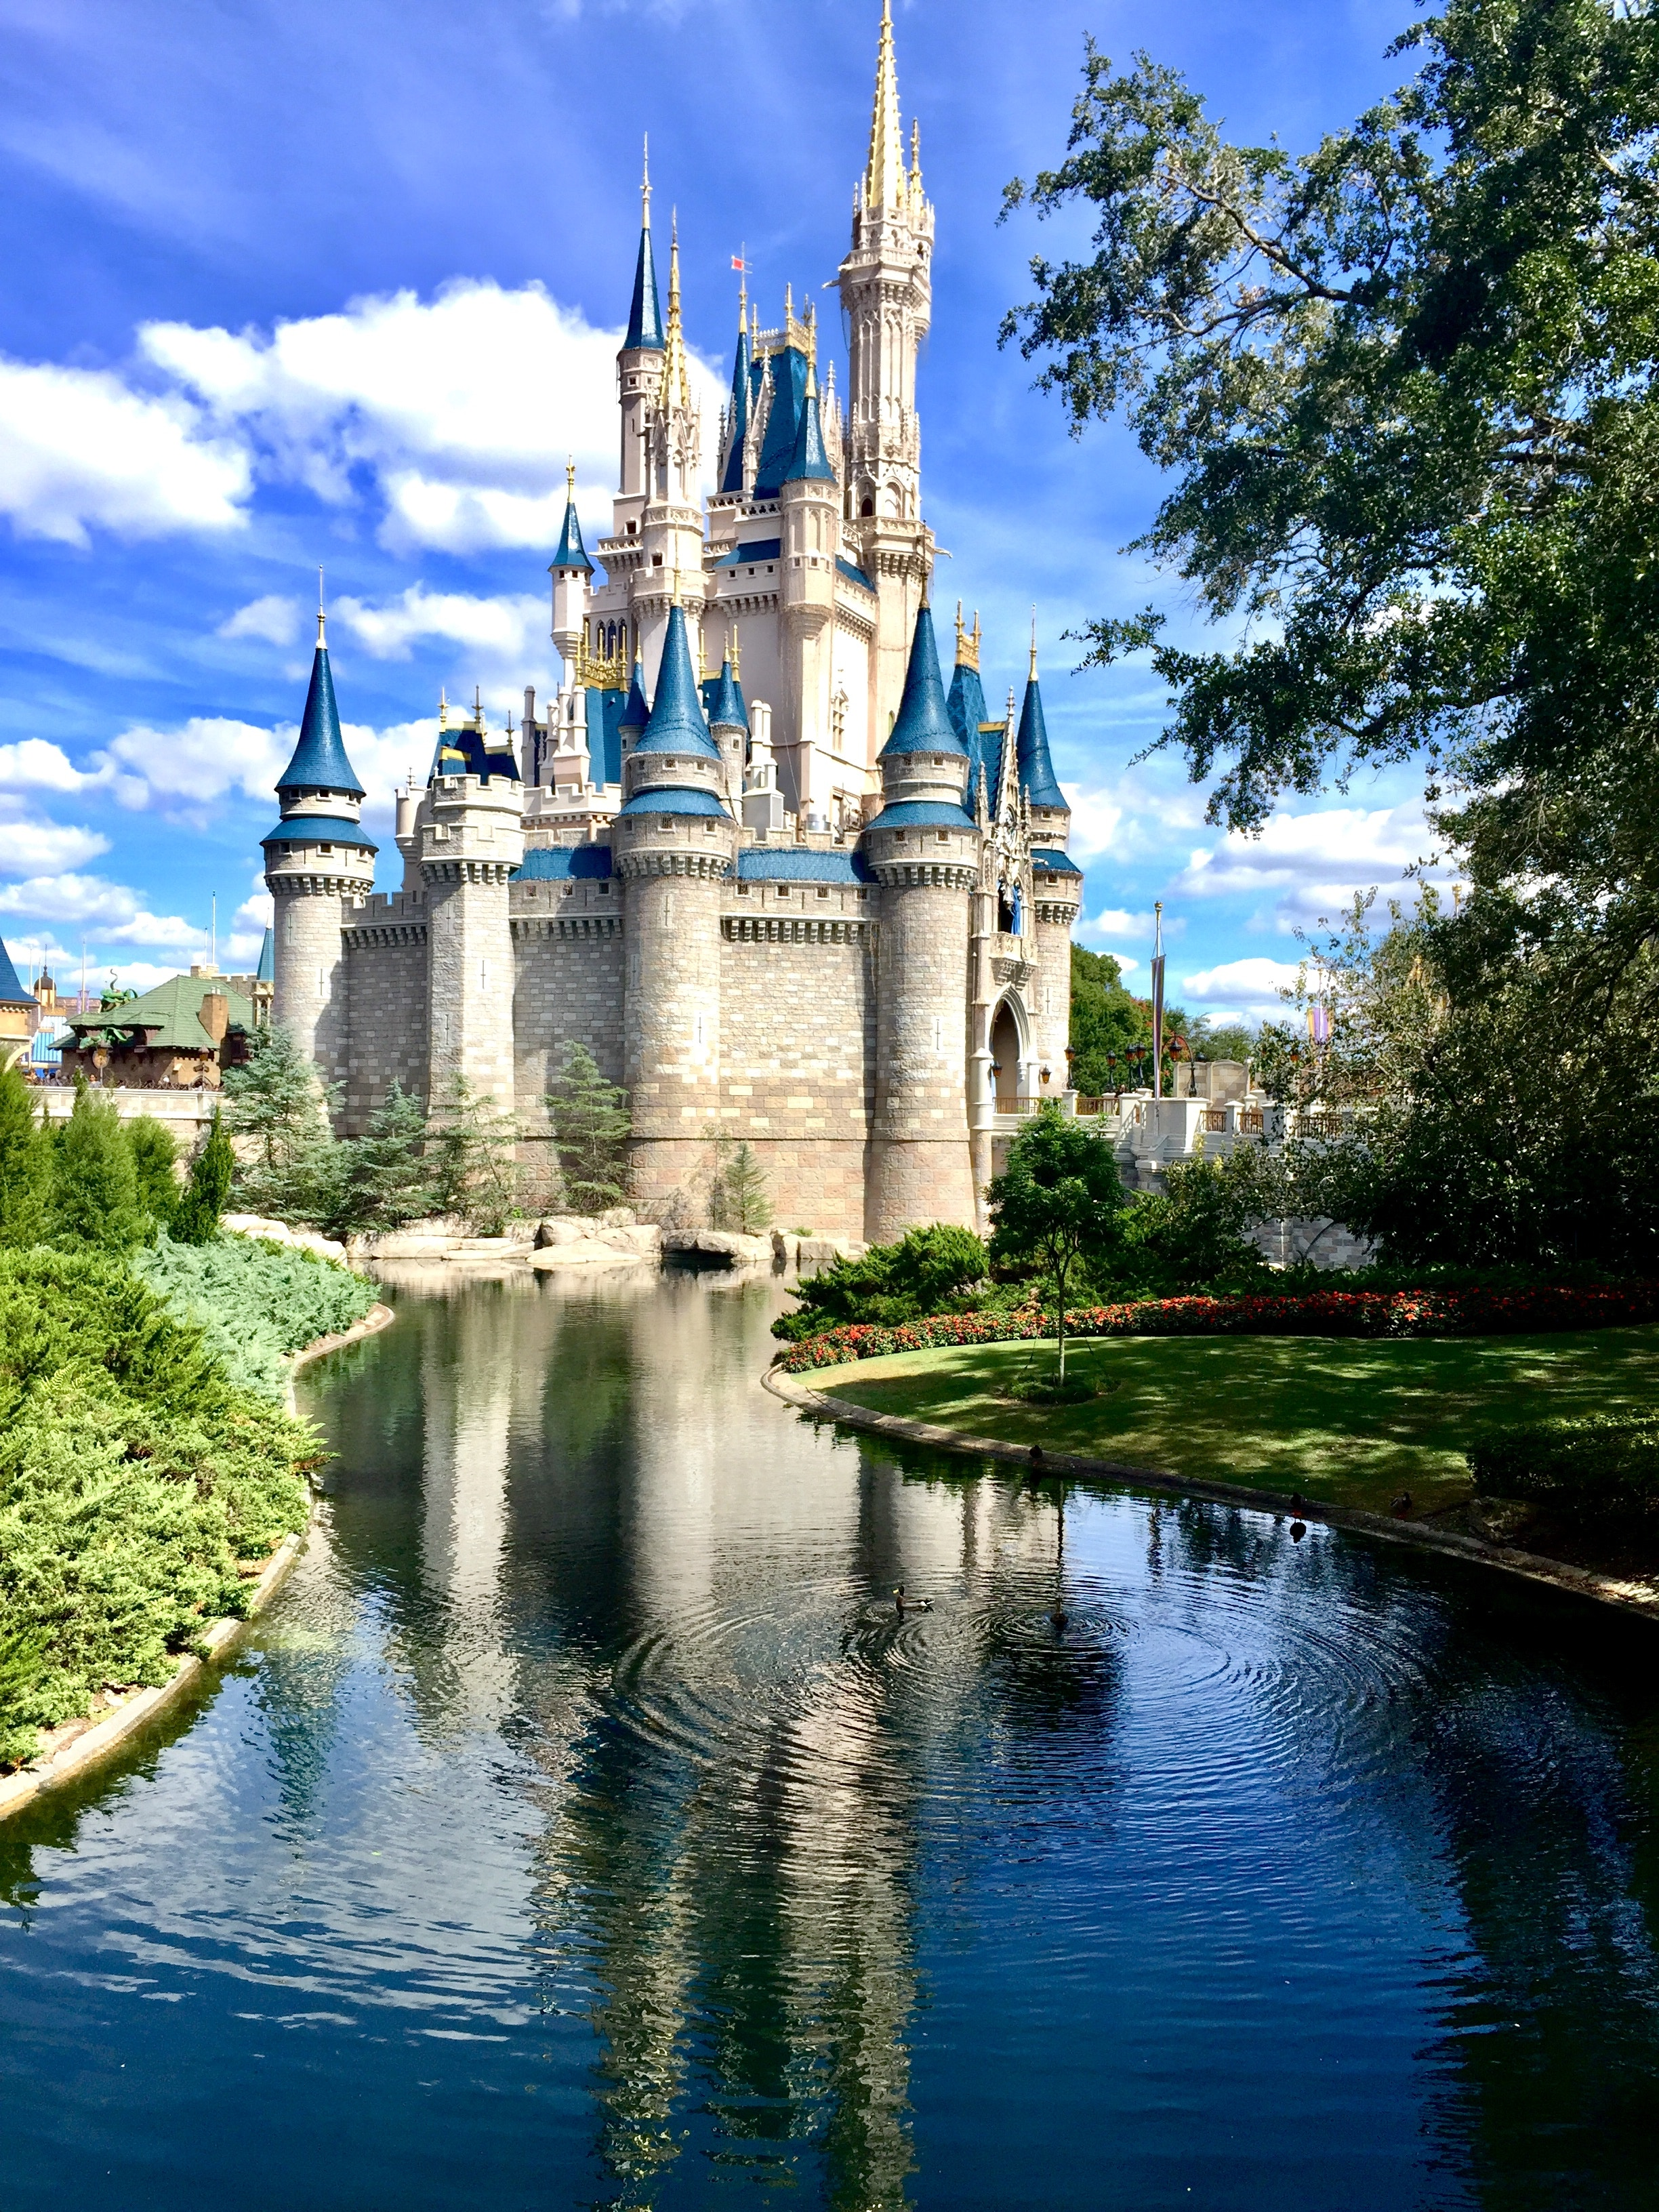 7 Reasons why a Disney Travel Agent will make your trip